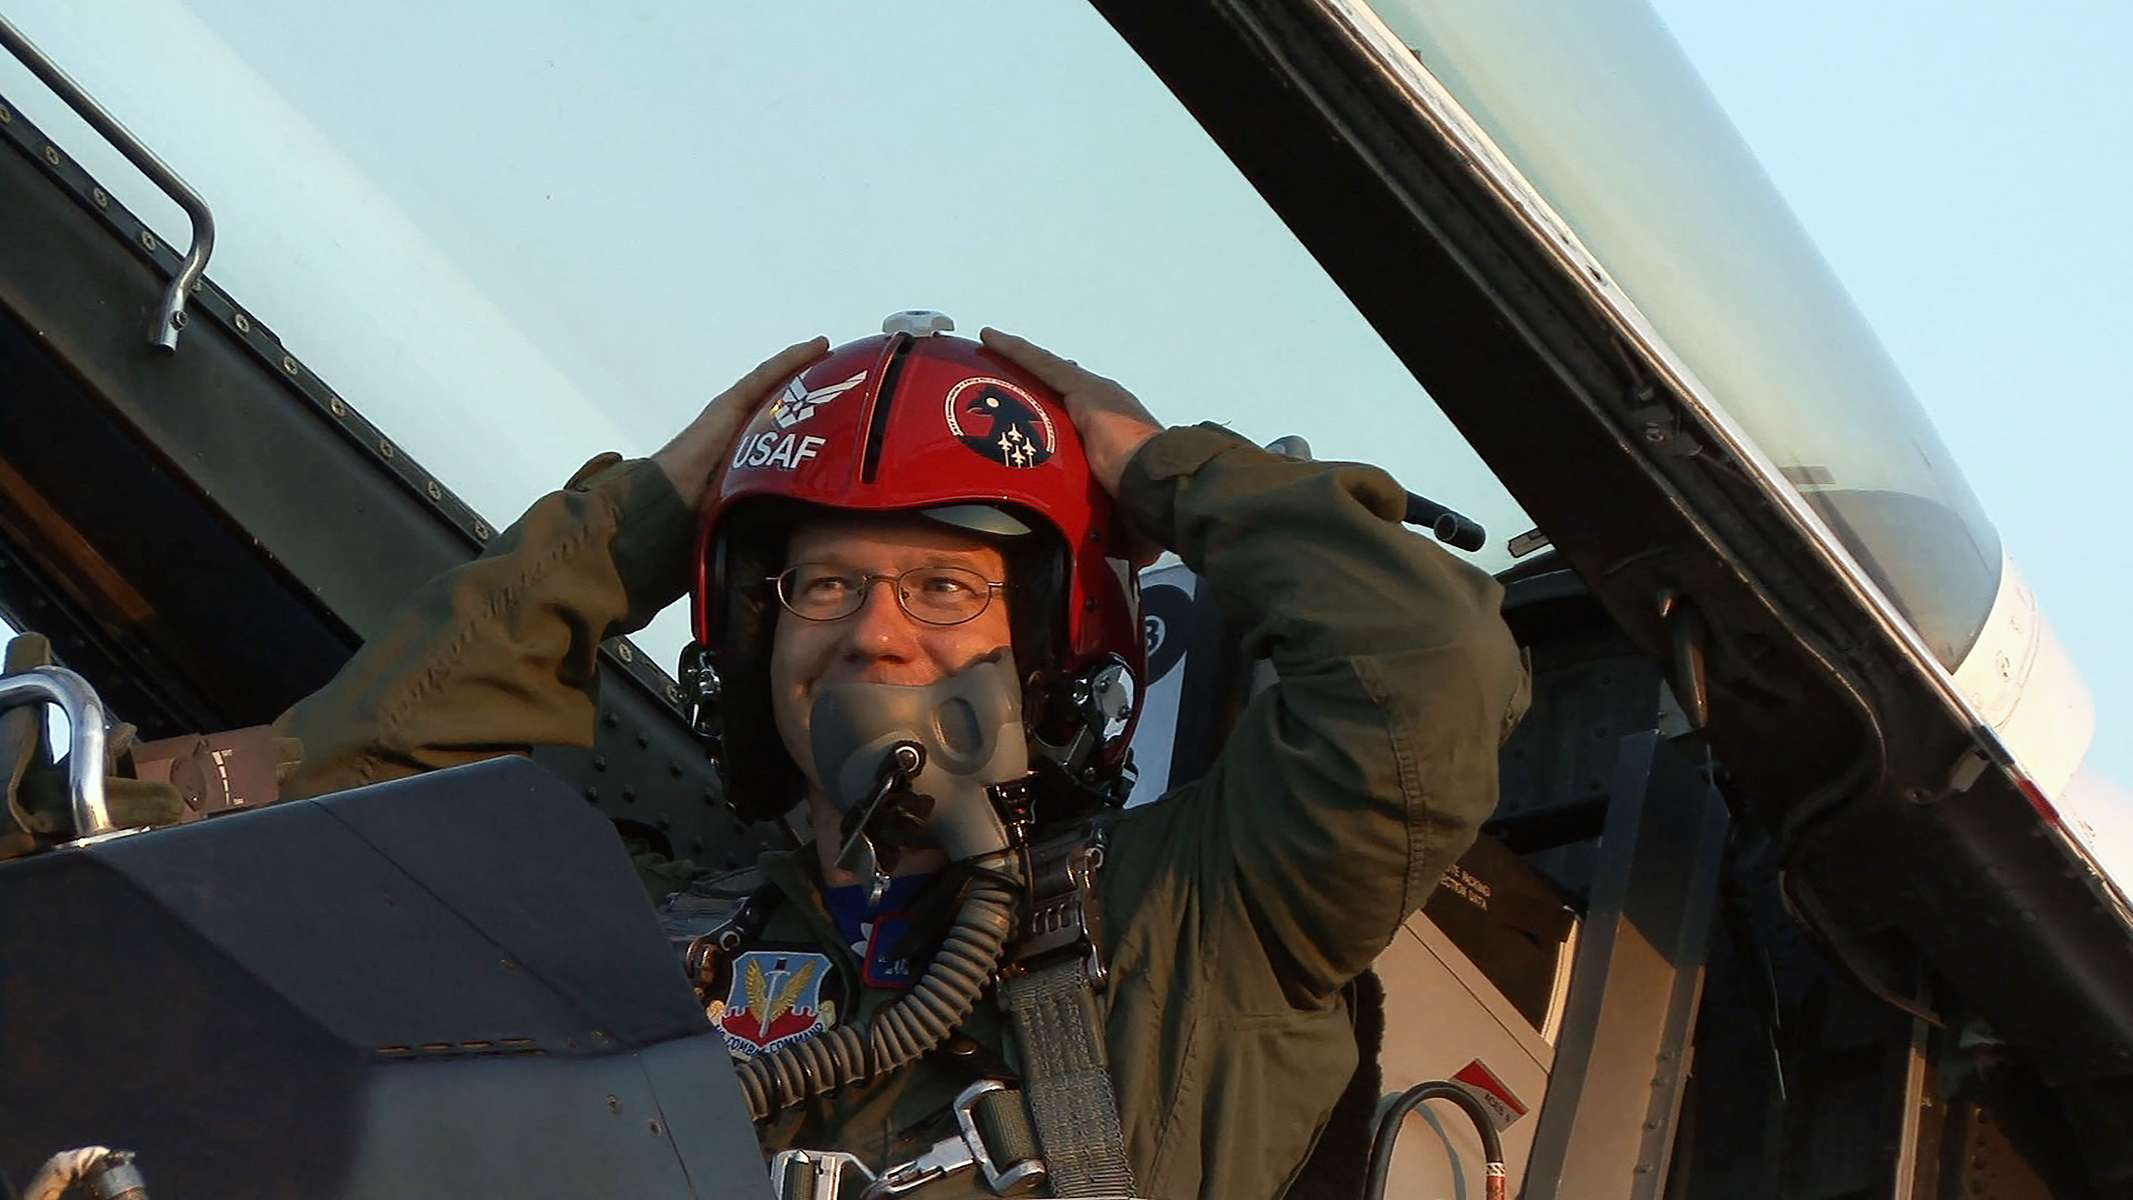 After landing, Star-Ledger photographer Matt Rainey sits in the Air Force F16D jet at McGuire Air Force Base. Lt. Col Rob Skelton piloted the Thunderbird and took Rainey from NJ down past Washington DC and back. Select members of the media get a ride on the Lockheed Martin jet in the days before an air show, which will take place this weekend. This image is a still pulled from video.    Bordentown, NJ  5/30/08  12:27:09 PM  SCOTT LITUCHY/THE STAR-LEDGER